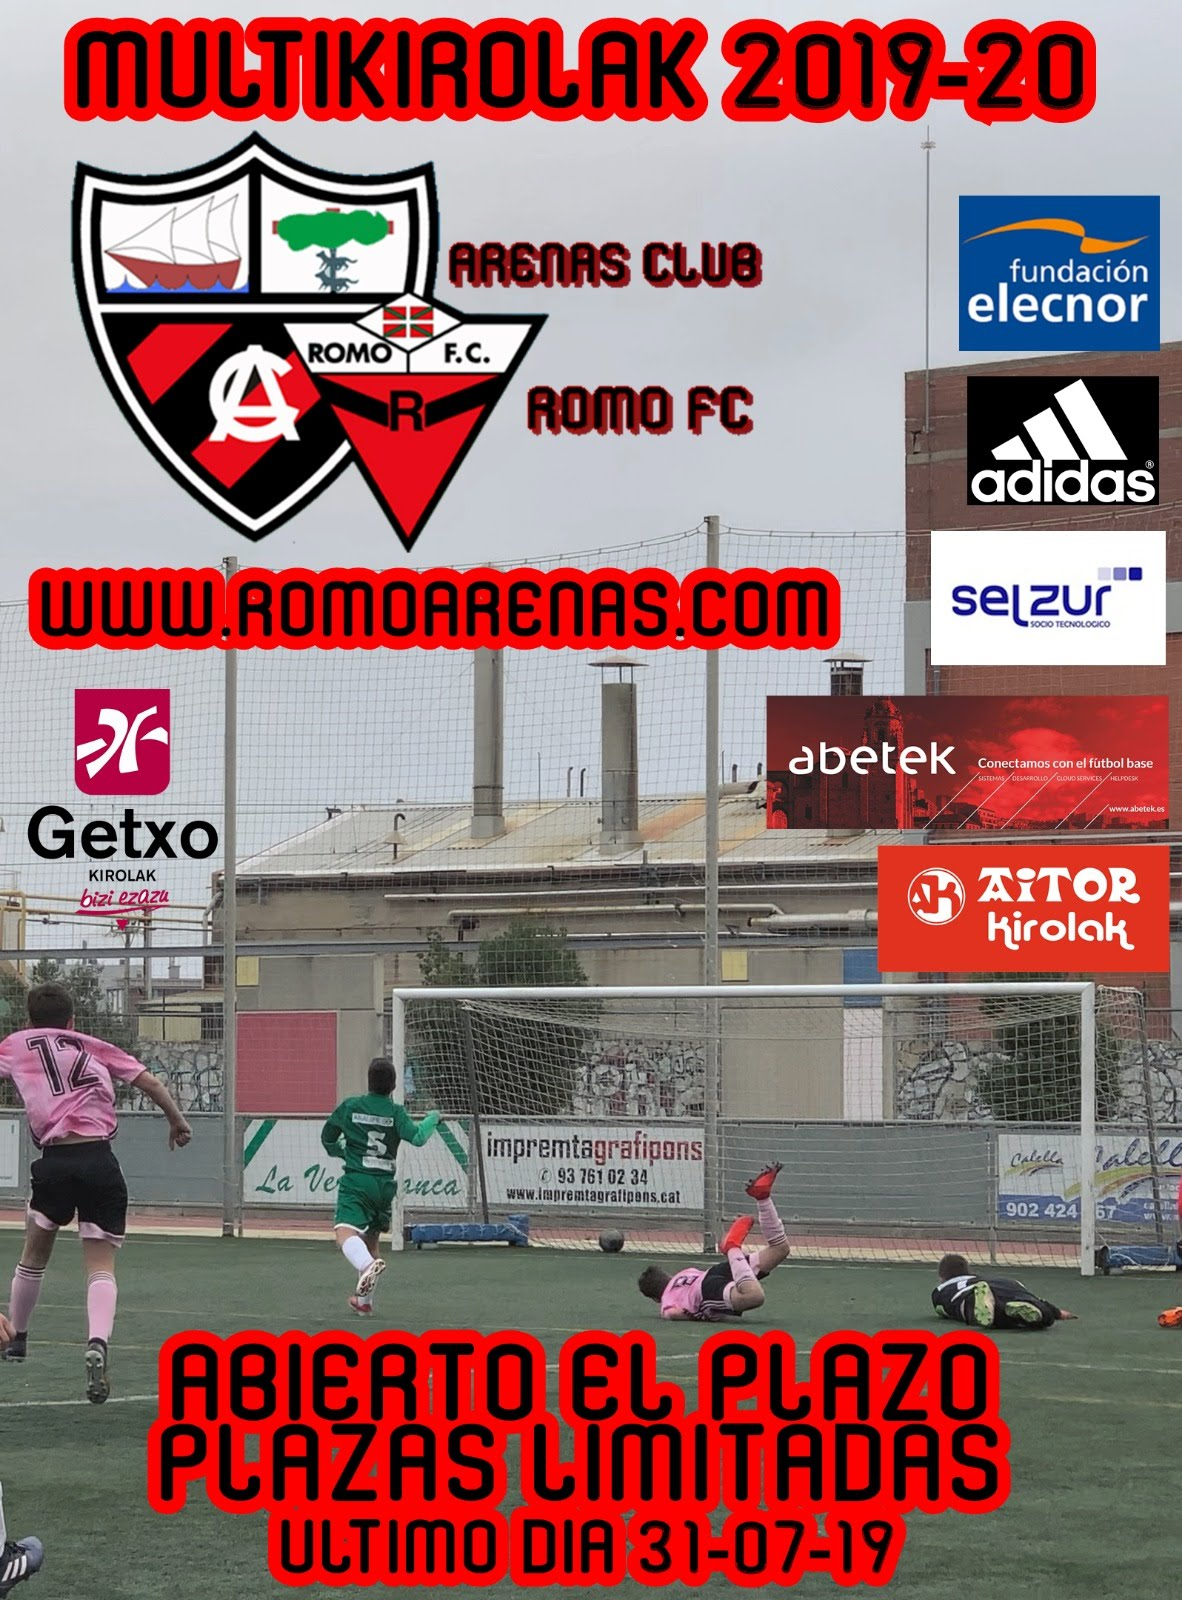 https://sites.google.com/site/romofcarenasclub/notici/abiertoelplazodeinscripcionesamultikirolak2019-20